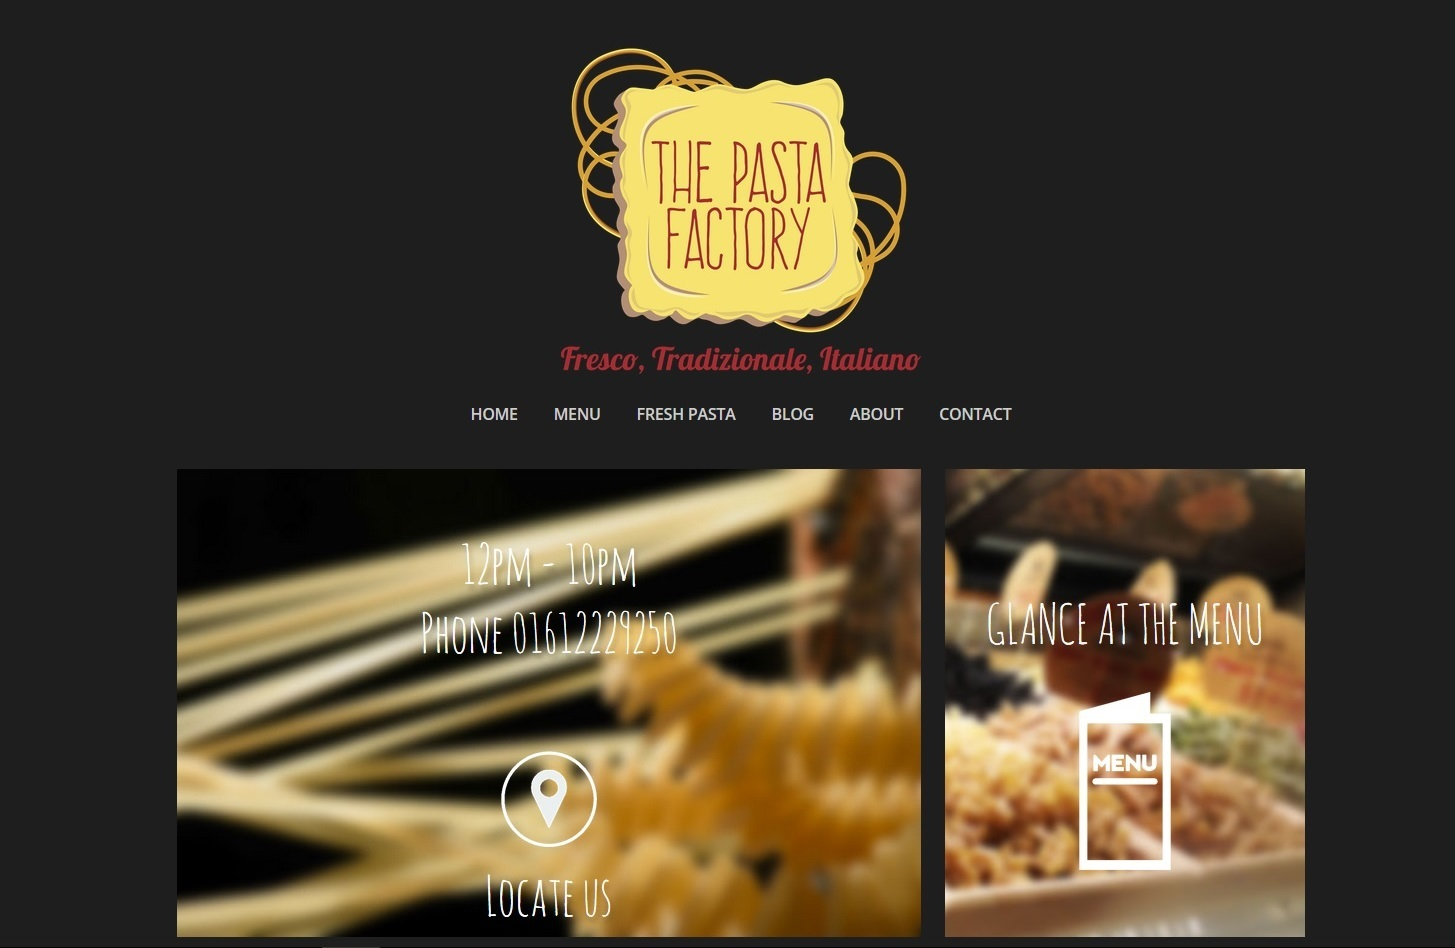 GRAN TOUR EVENTS & THE PASTA FACTORY JOIN TO PROMOTE CYCLING IN PIEDMONT